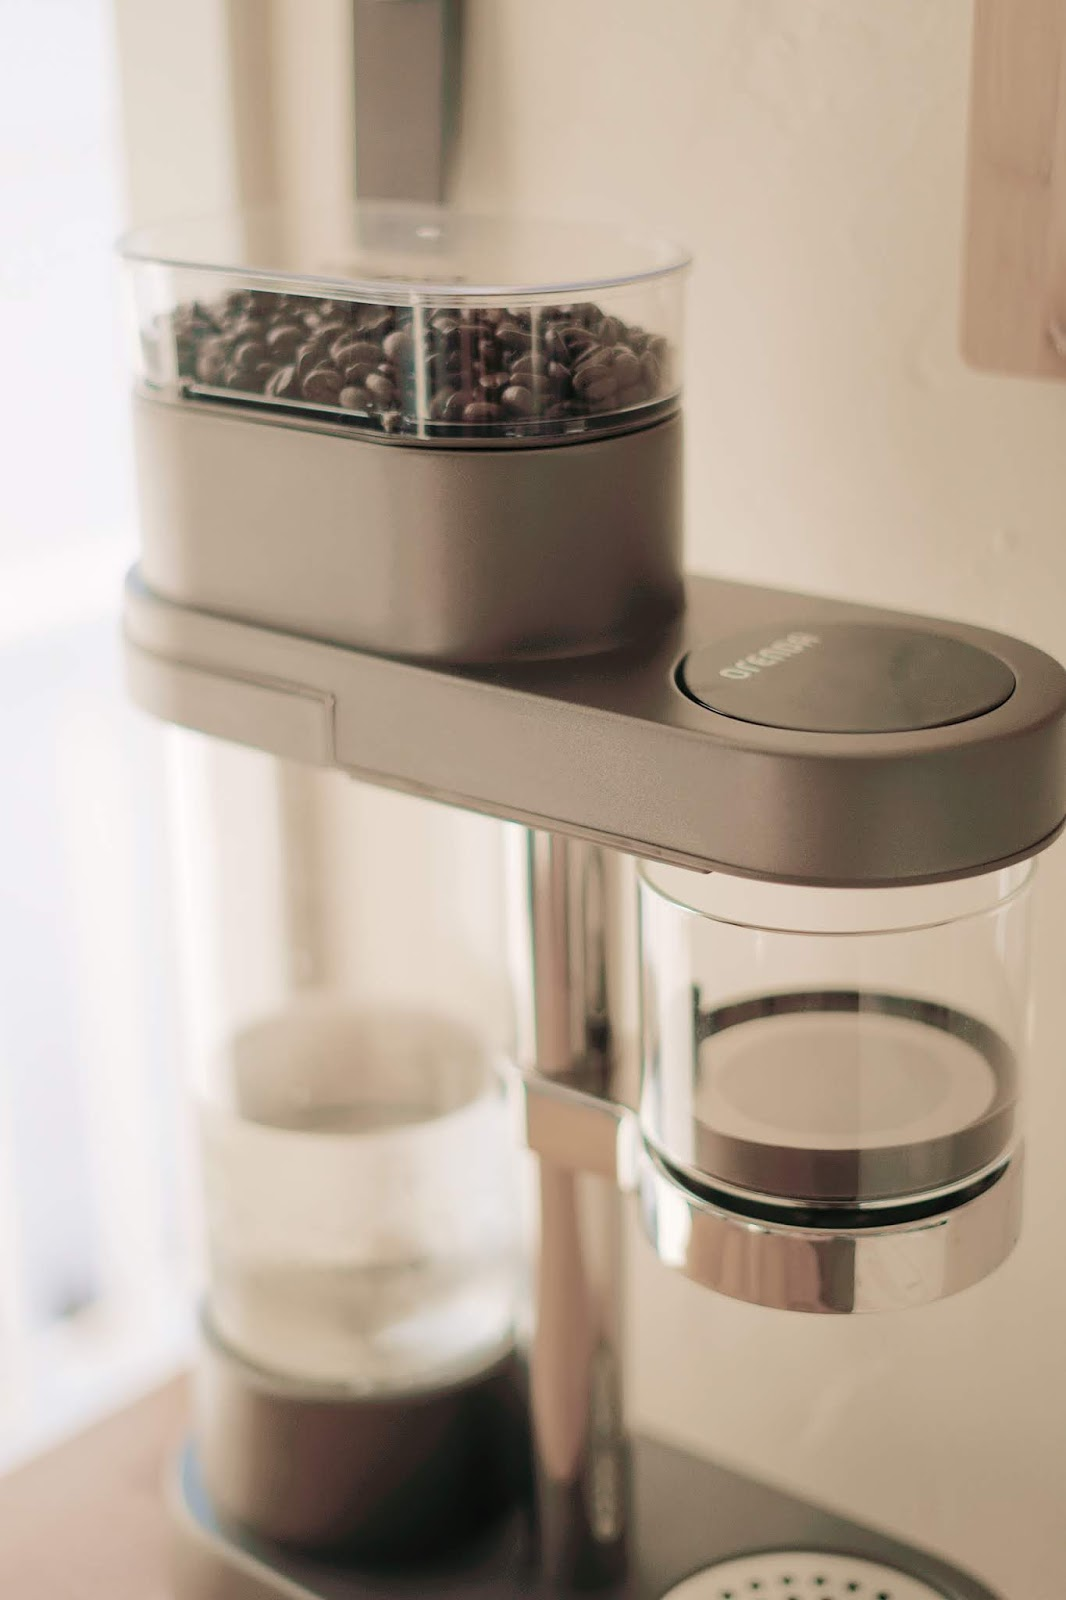 Orenda Coffee Maker (wastedhypeblog.com)